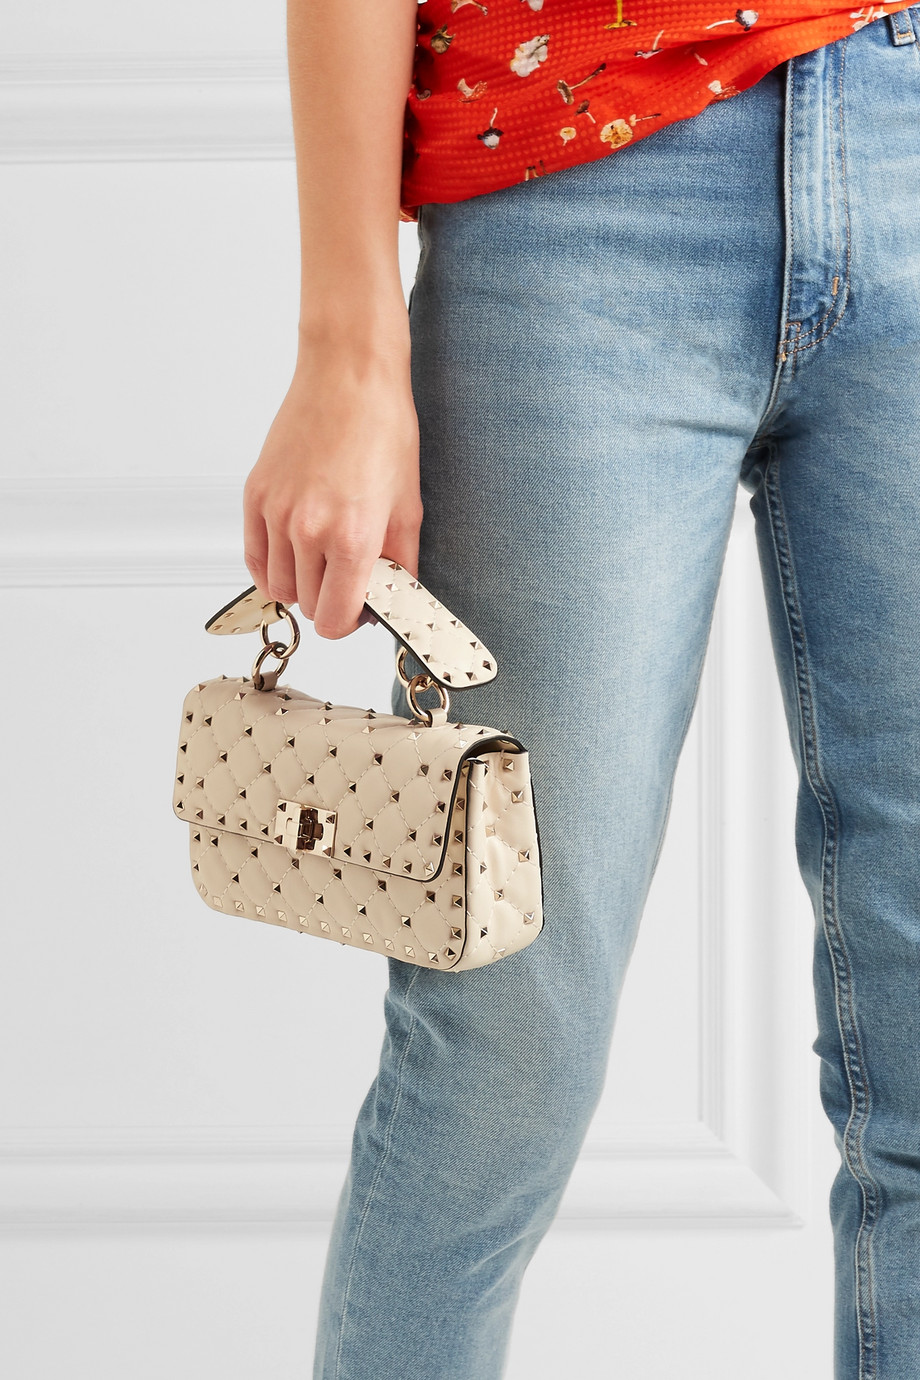 b6e3c5ad82 Valentino Valentino Garavani The Rockstud Spike small quilted leather  shoulder bag